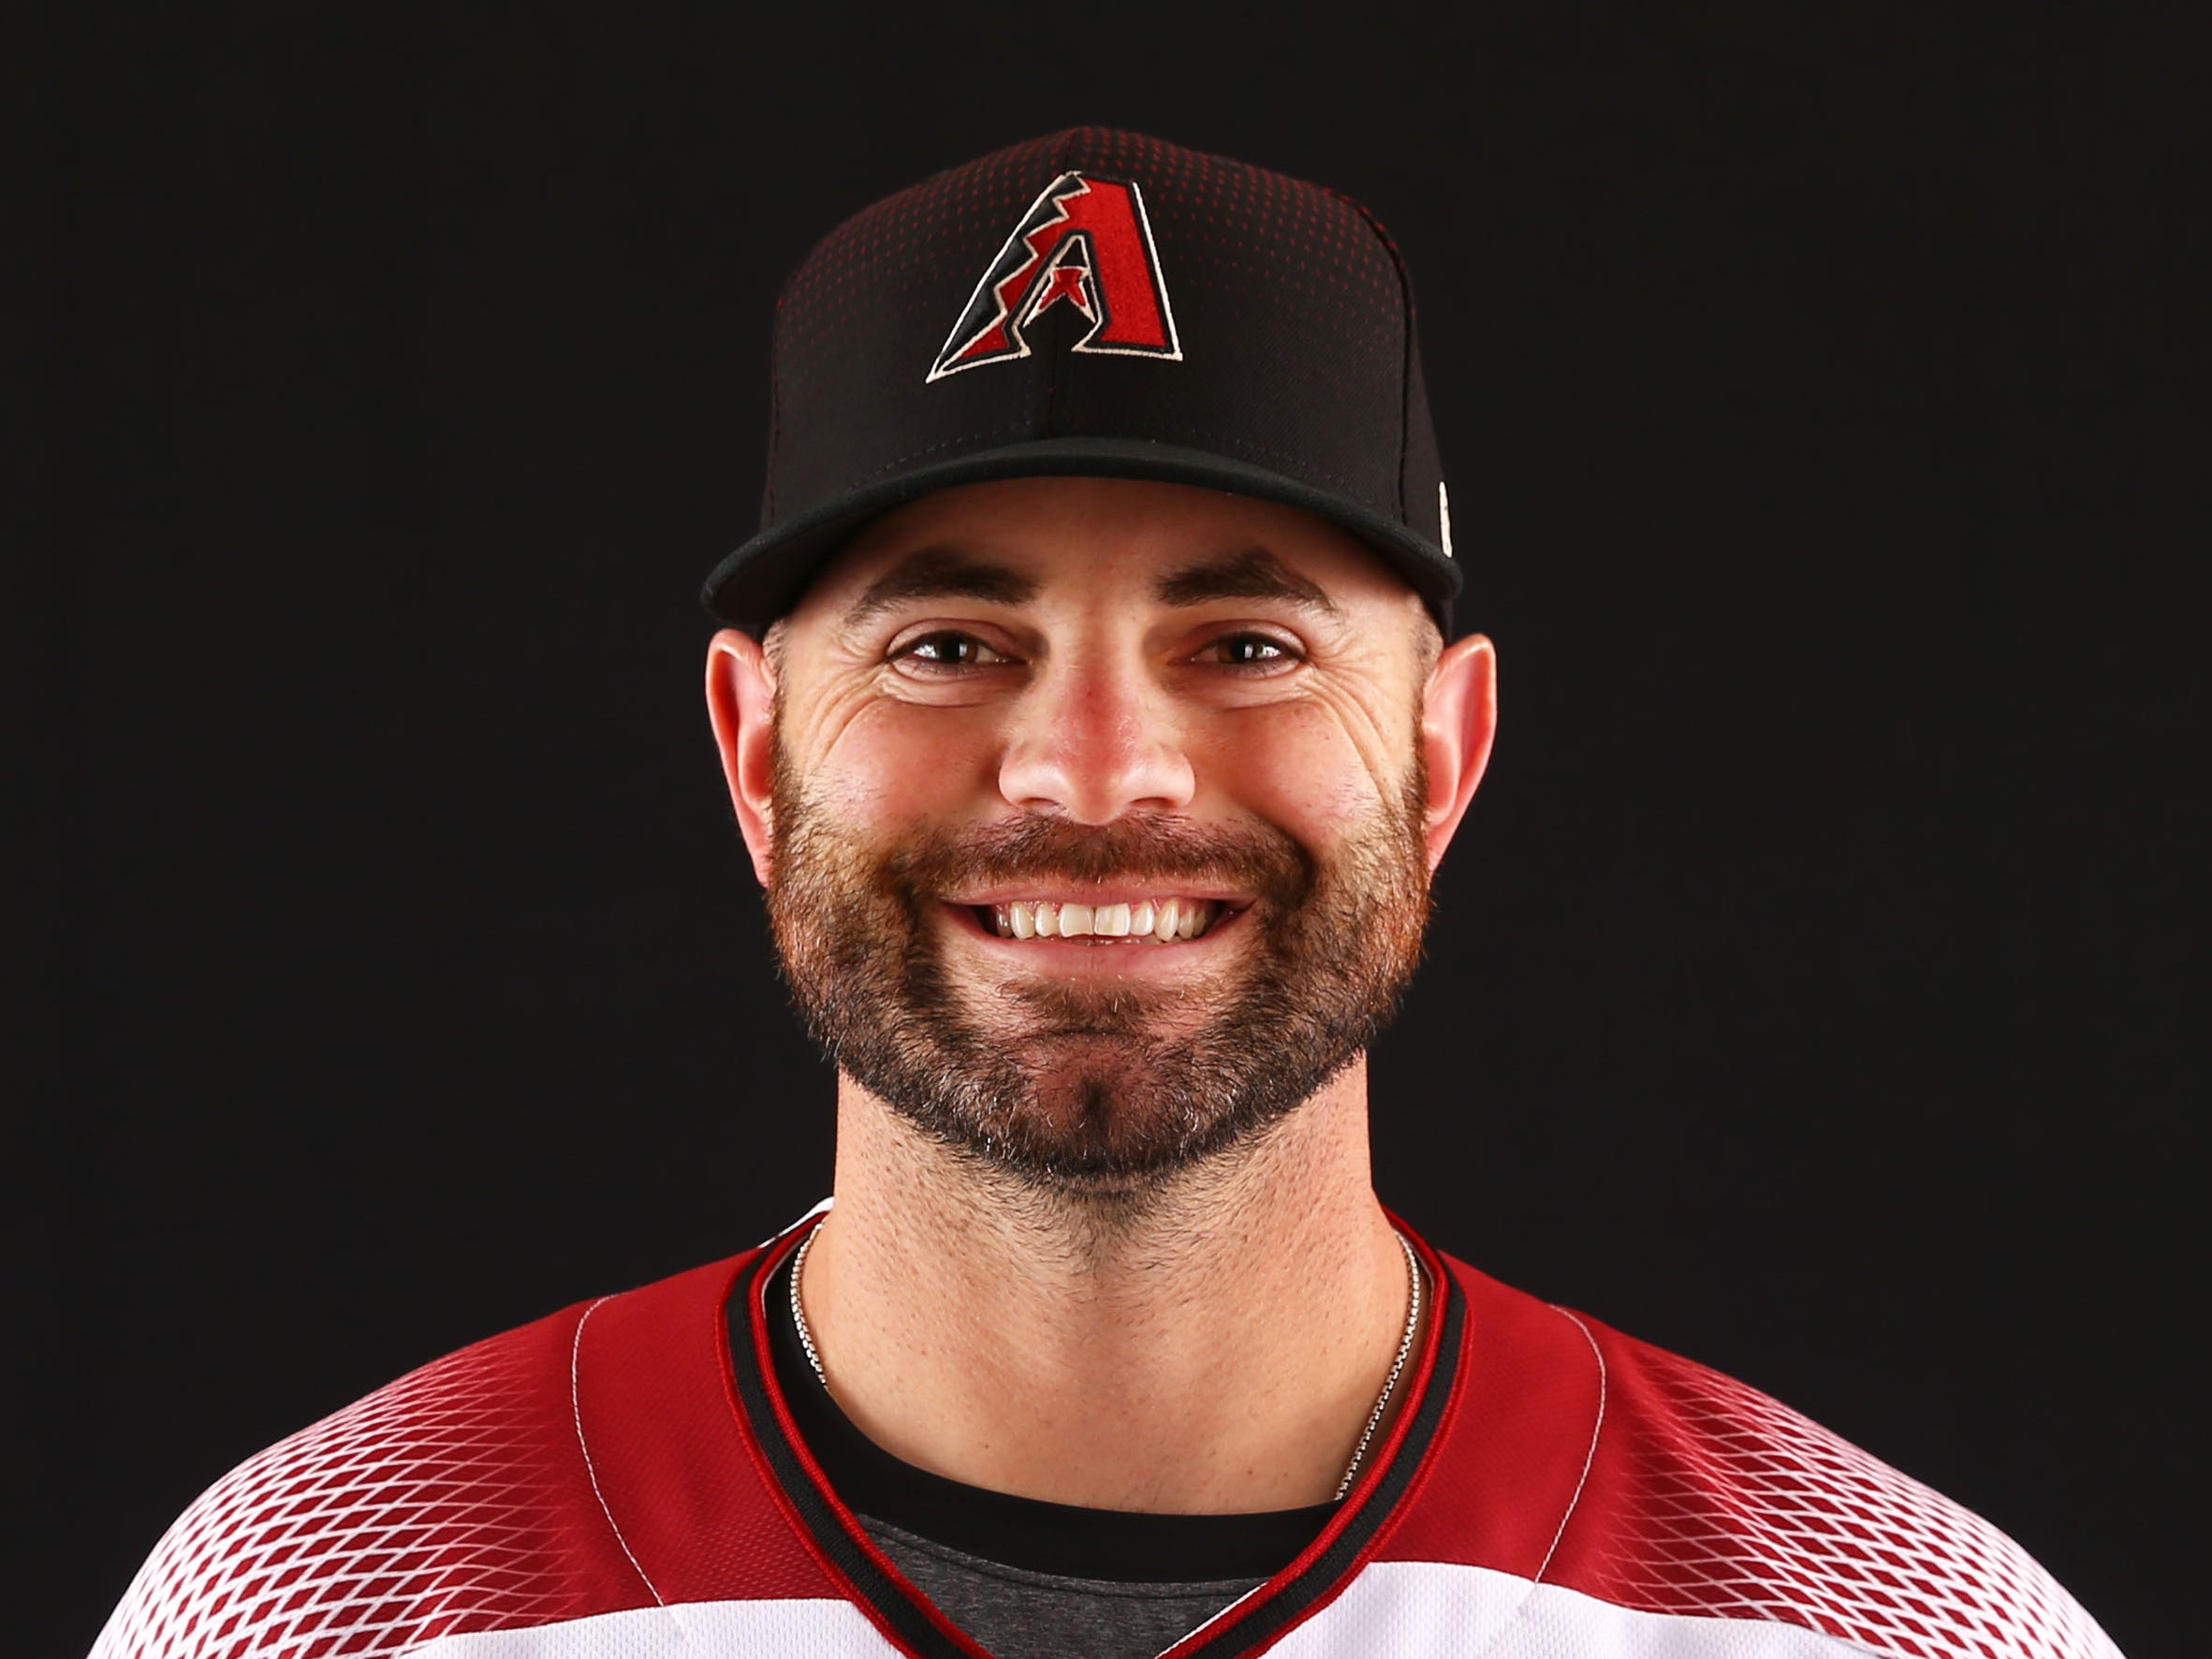 Marc Rzepczynski of the Arizona Diamondbacks poses for a photo during the annual Spring Training Photo Day on Feb. 20 at Salt River Fields in Scottsdale, Ariz.